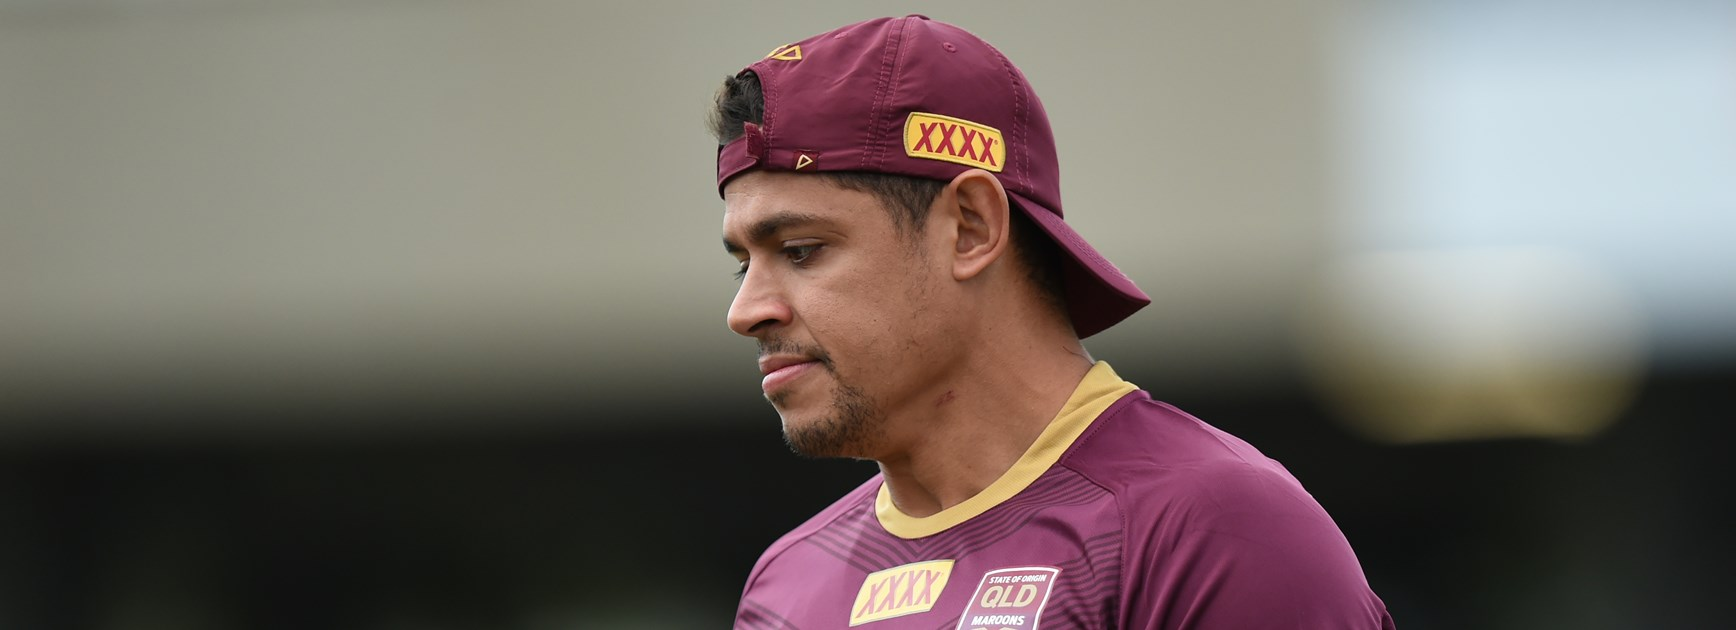 Maroons confirm Morgan to start at fullback, expect Gagai to play